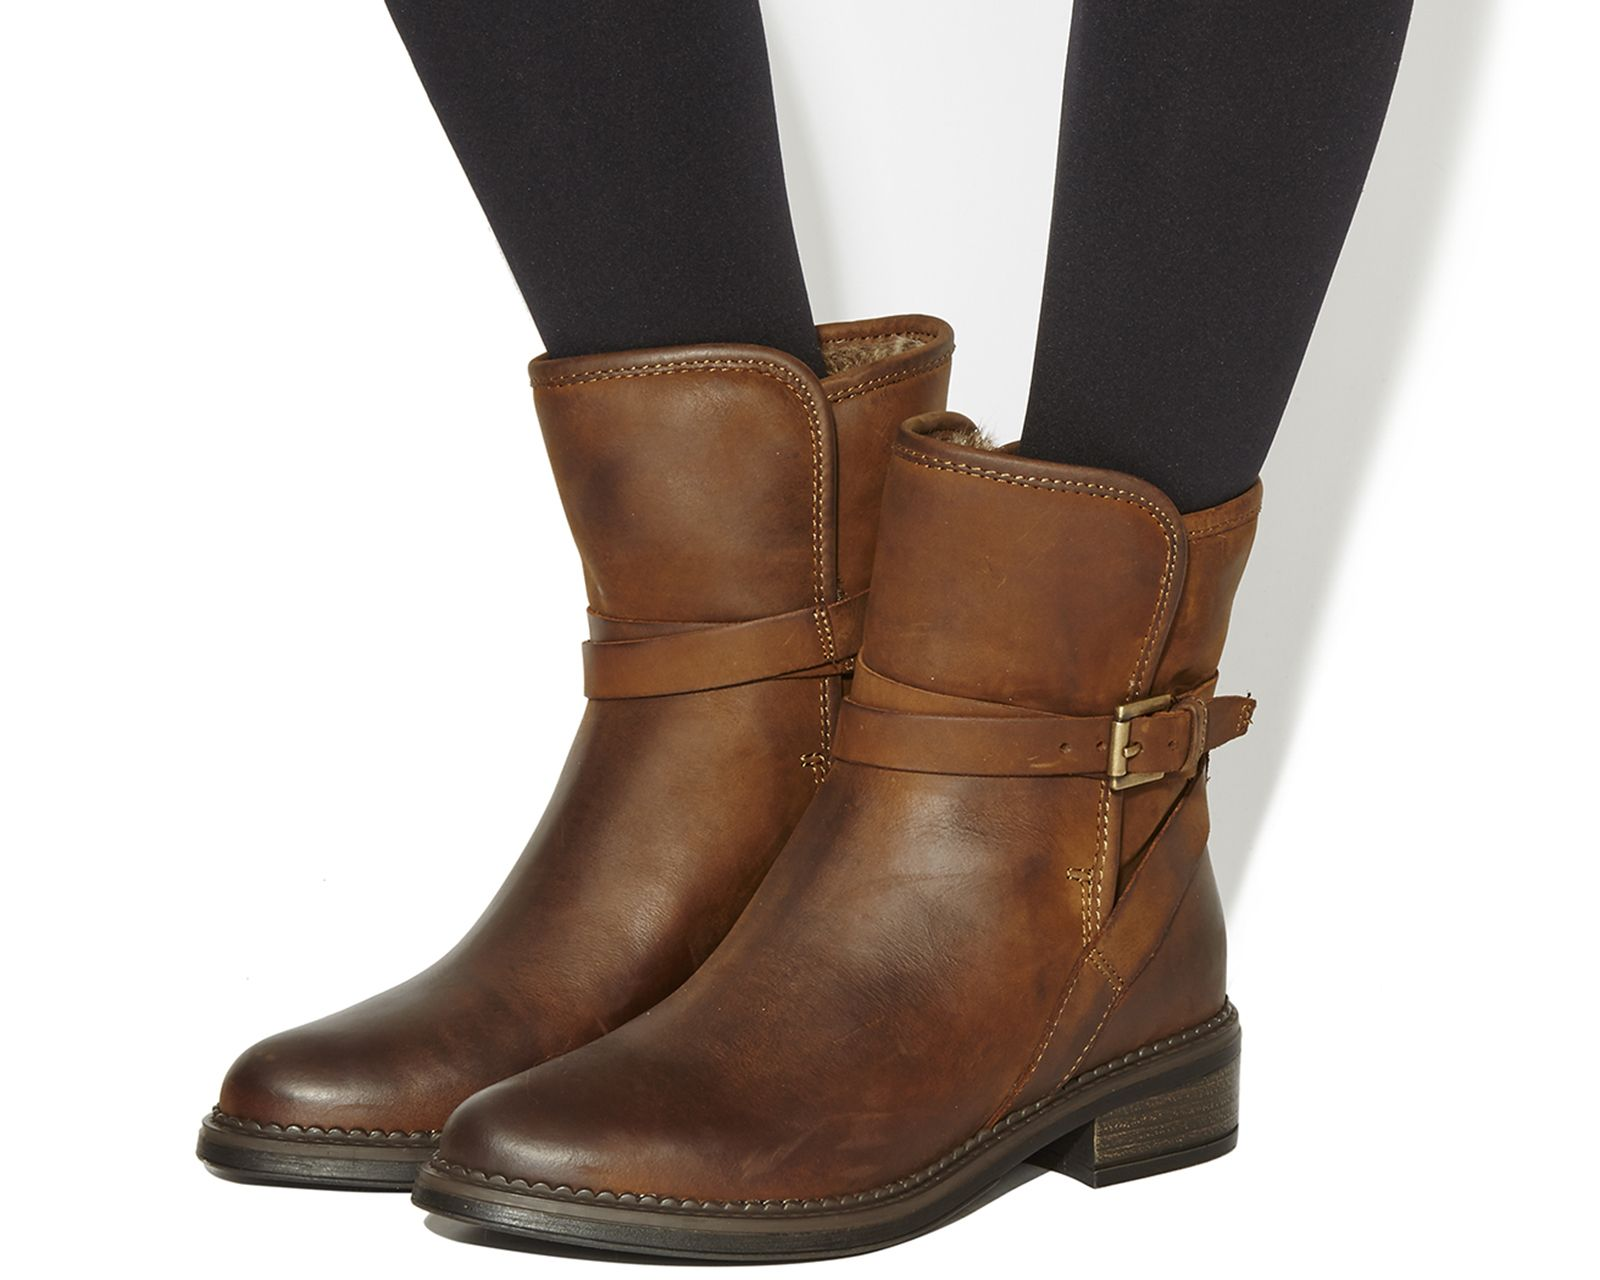 Office Isolate Fur Lined Biker Boots Brown Leather - Ankle Boots